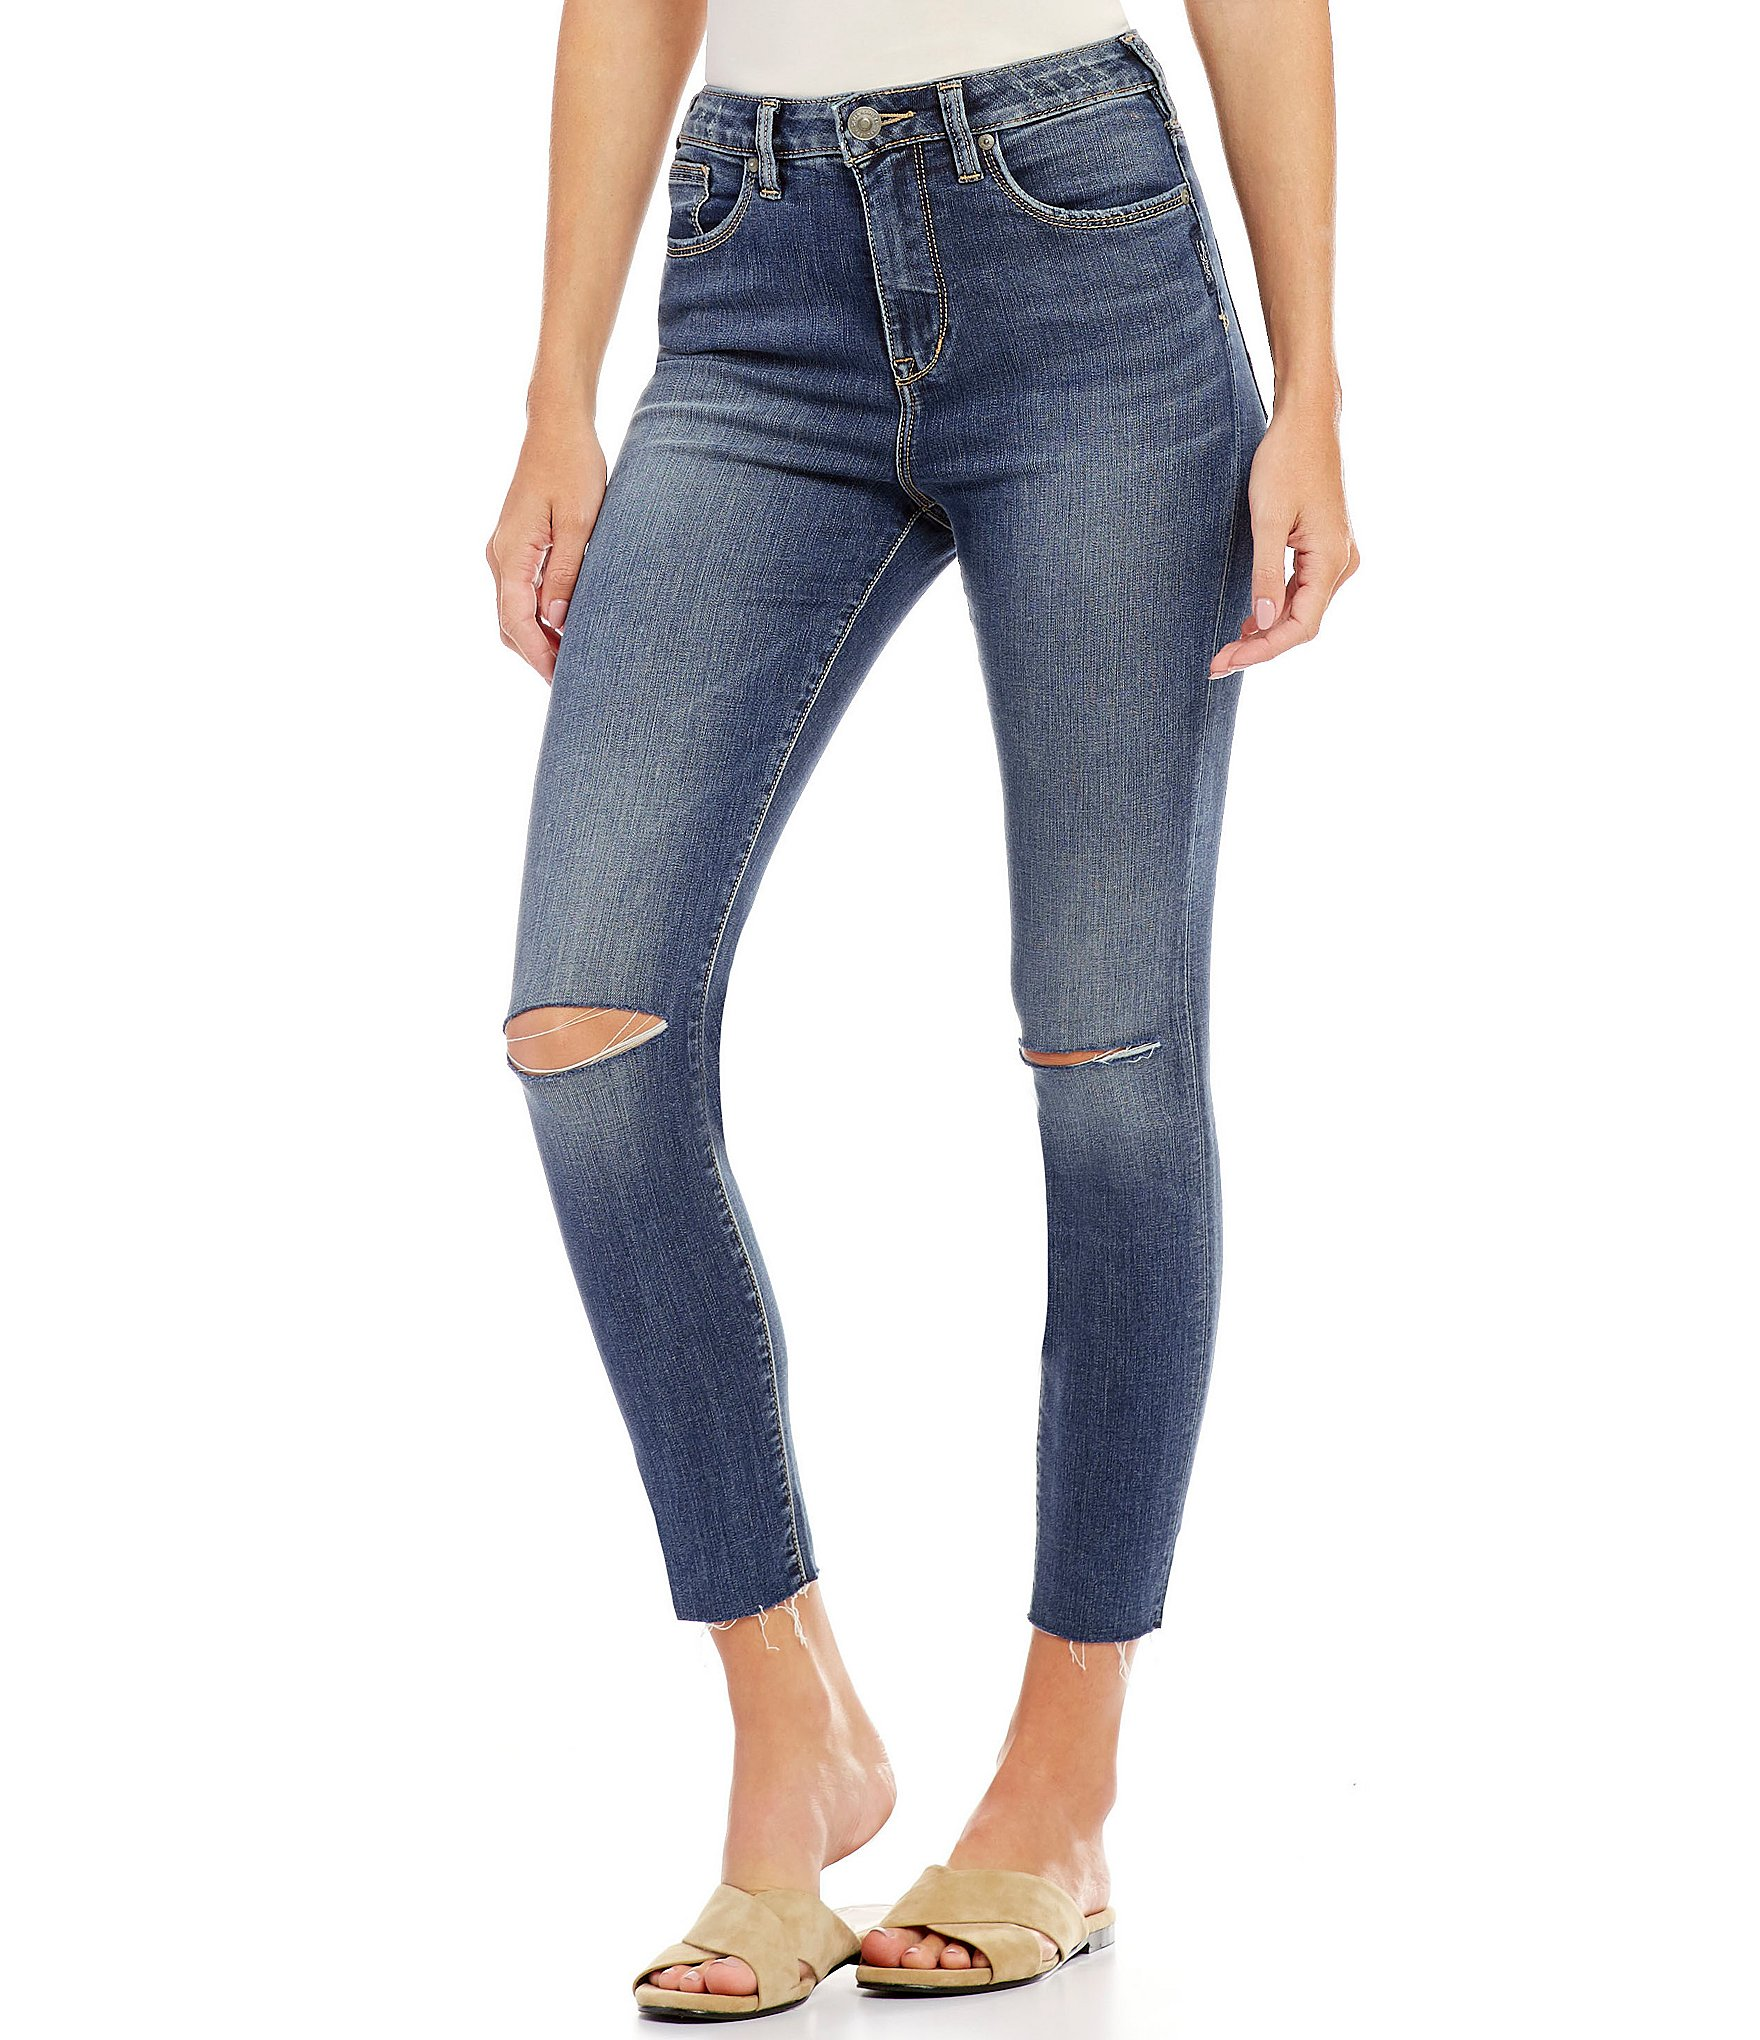 Find great deals on eBay for ankle jeggings. Shop with confidence.